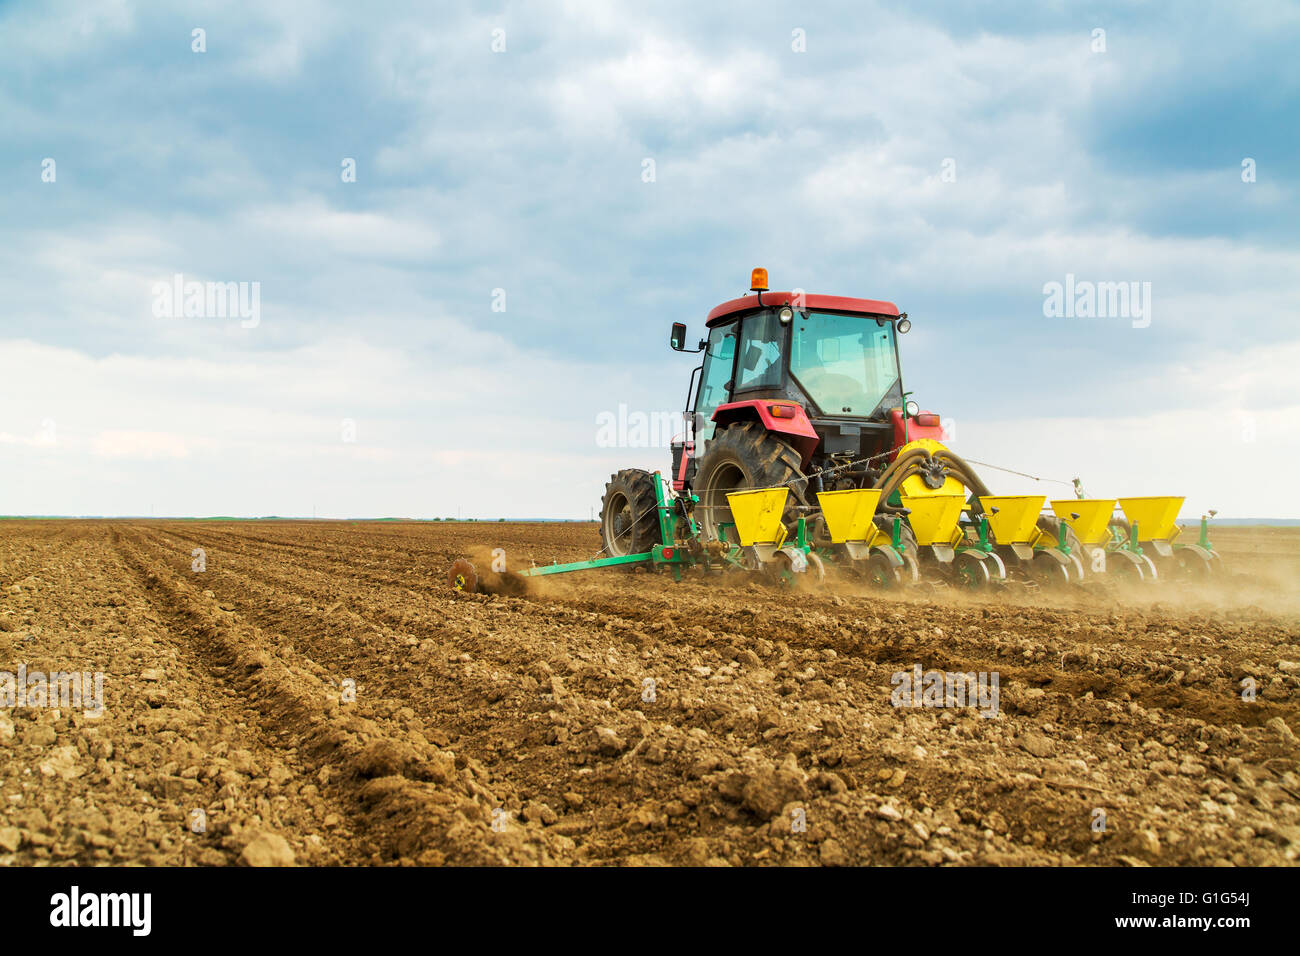 Farmer seeding crops at field - Stock Image